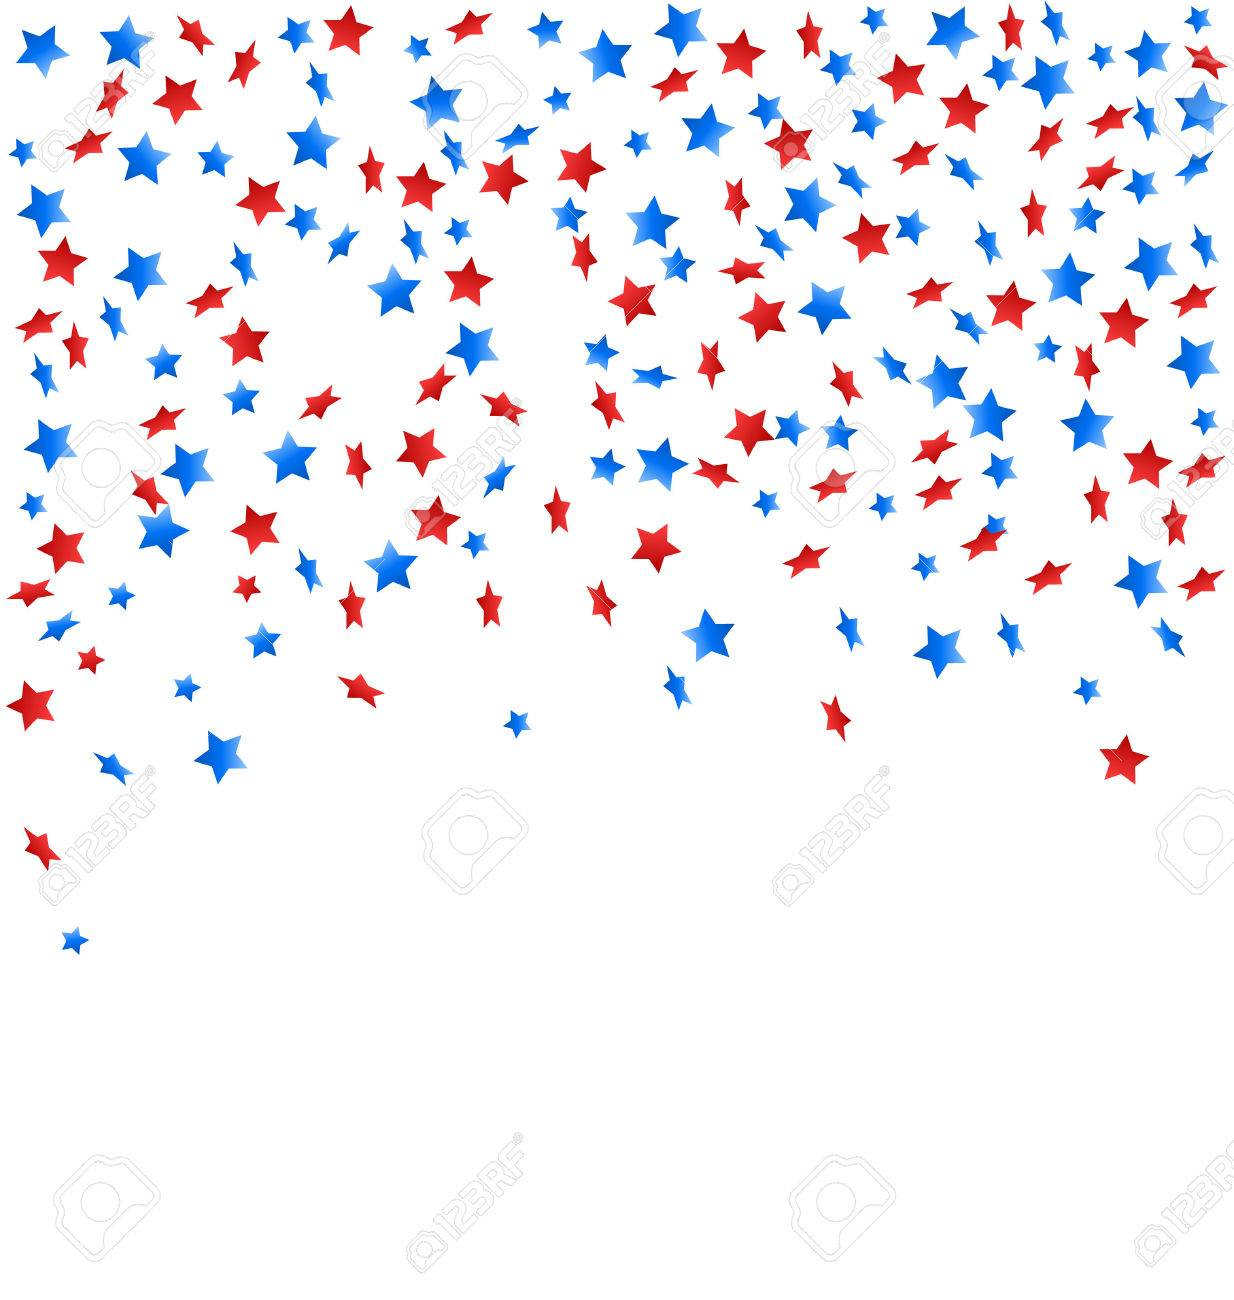 USA celebration confetti stars in national colors for independence day isolated on white background - 41037708